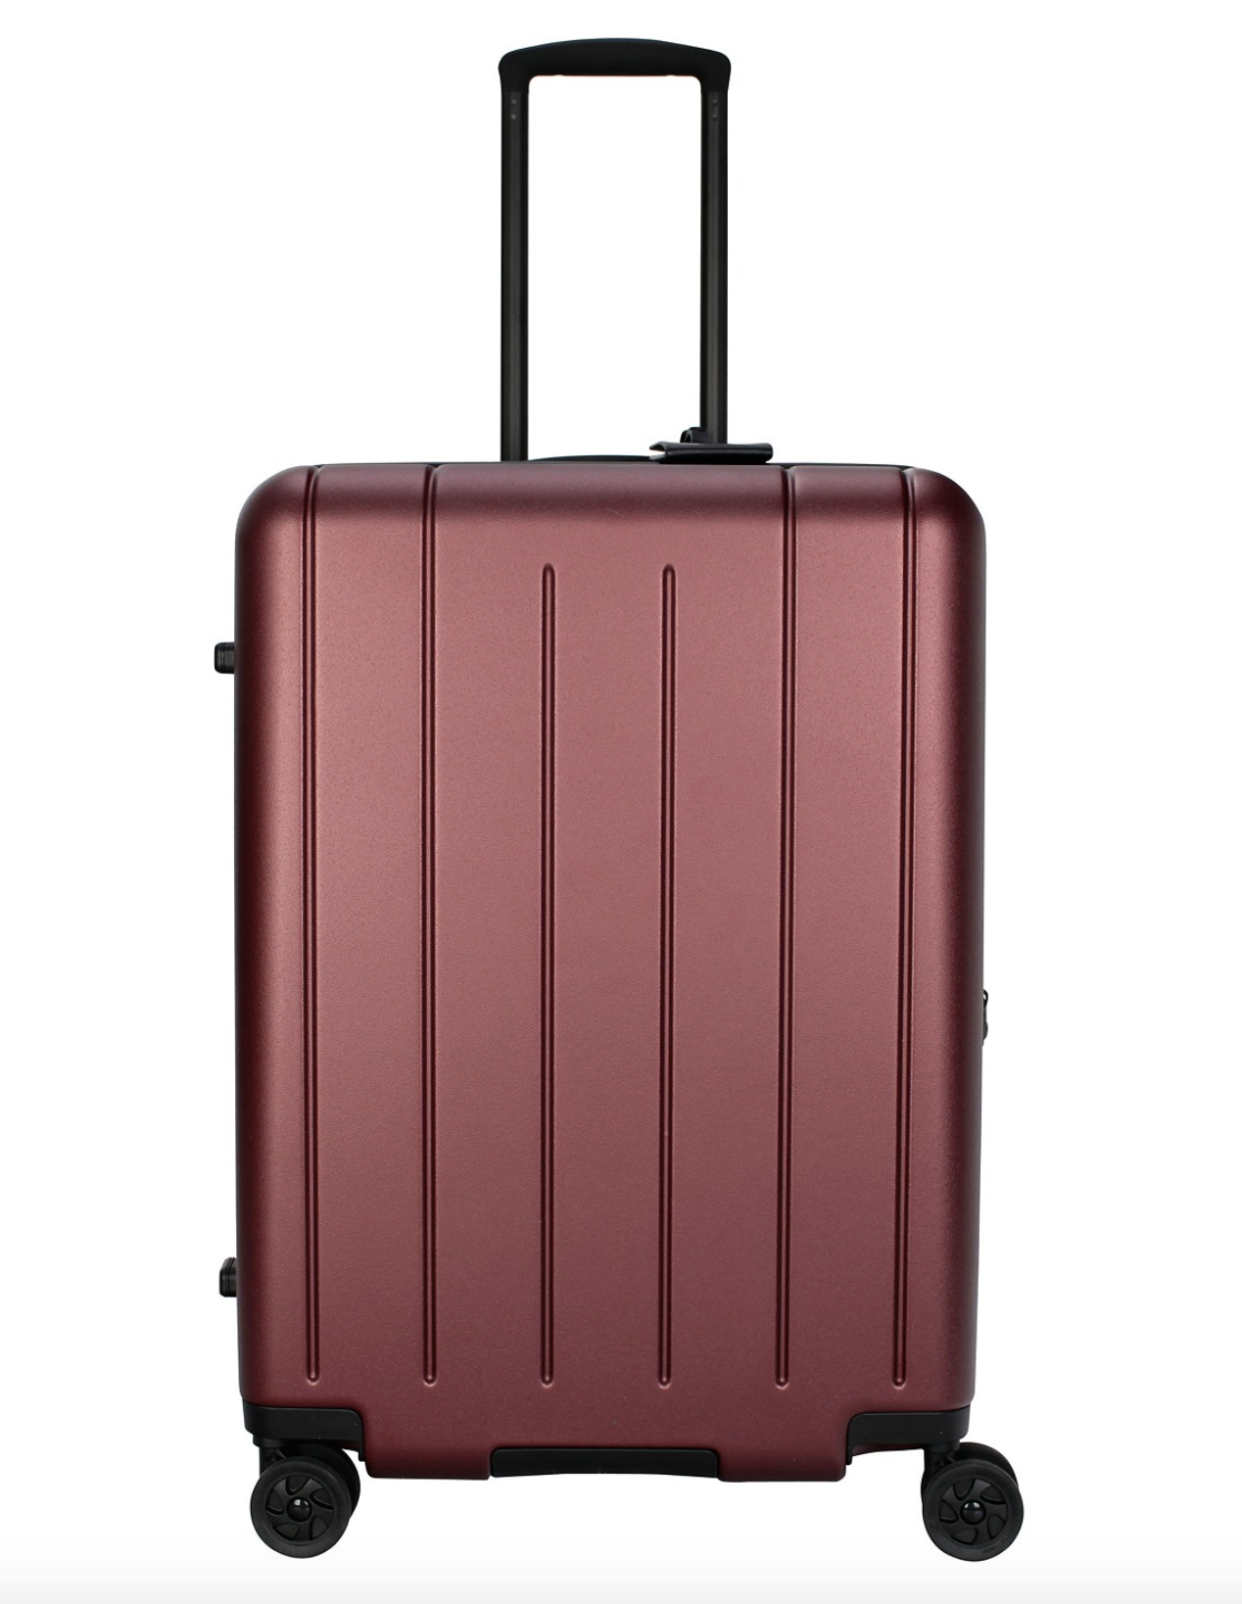 Trips 2.0 26-inch hardside check-in luggage